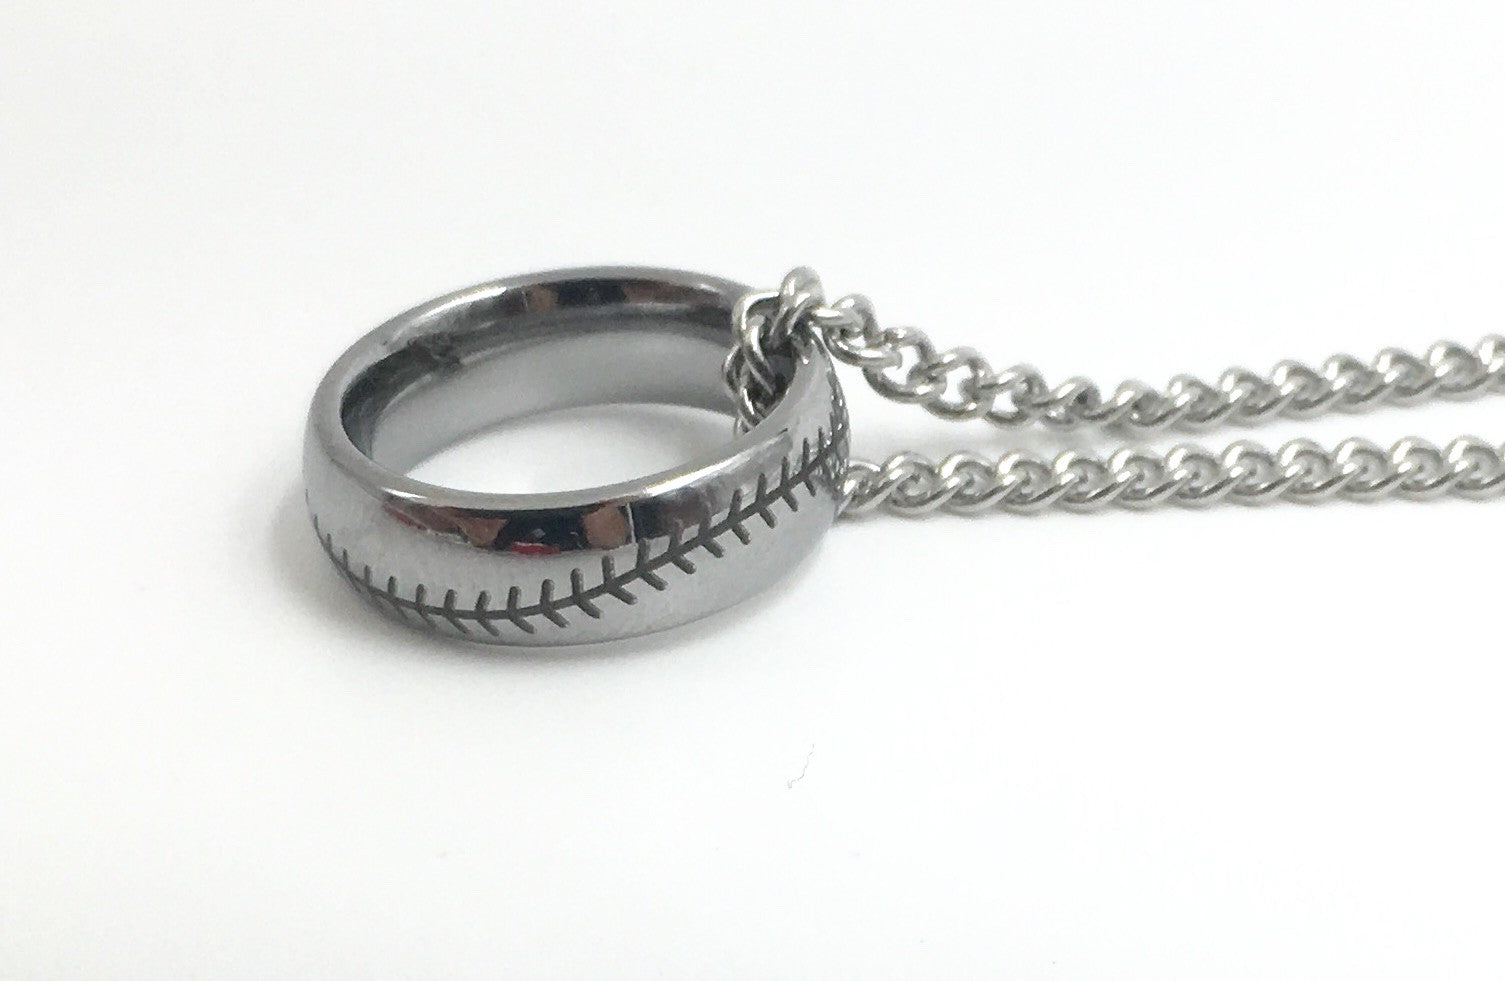 6mm Silver Tungsten Ring With Baseball Stitching (FREE SHIPPING)